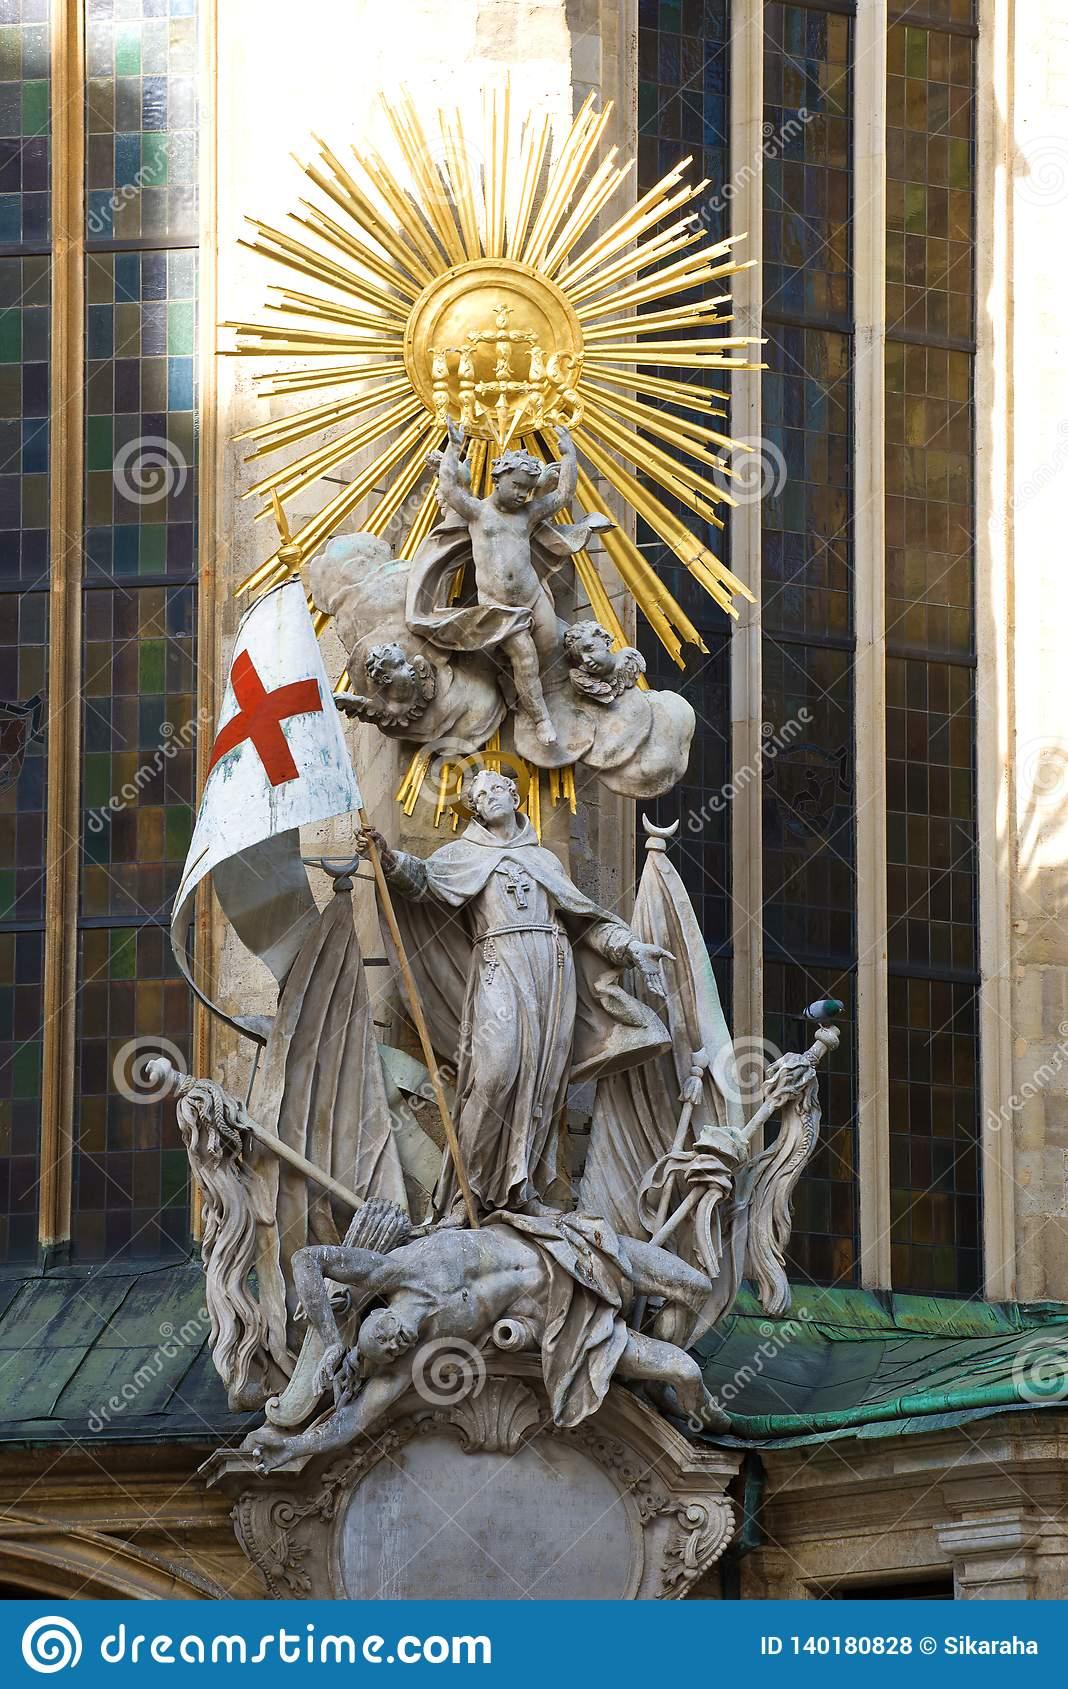 Sculpture of Saint Joahn Capistran conquering the Turks. Detail of the design of the Cathedral of St. Stephen. Vienna, Austria